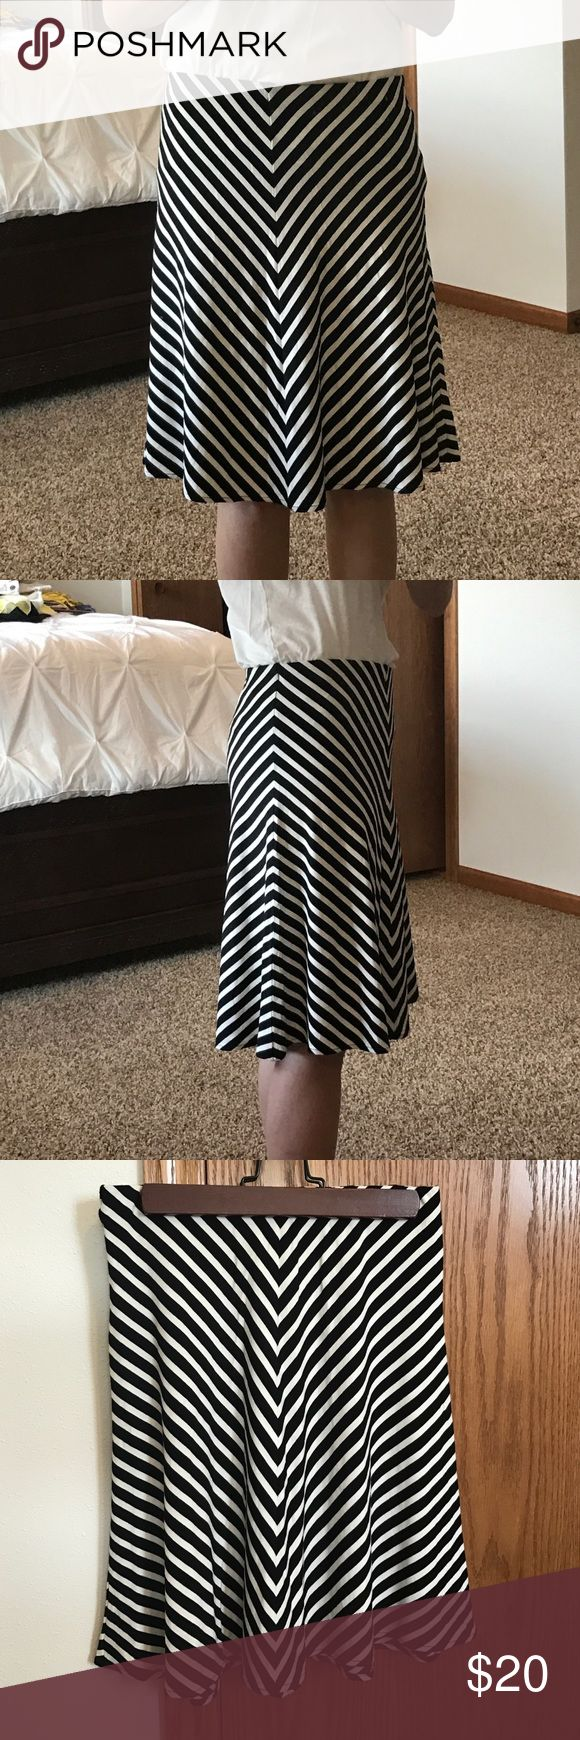 XXSpetite Ann Taylor Black and white skirt Ann Taylor Loft Petites Black and white stripped rayon a-line skirt. This skirt is super cute and would be great casual or you could dress it up. It is in excellent condition! Ann Taylor  Skirts A-Line or Full